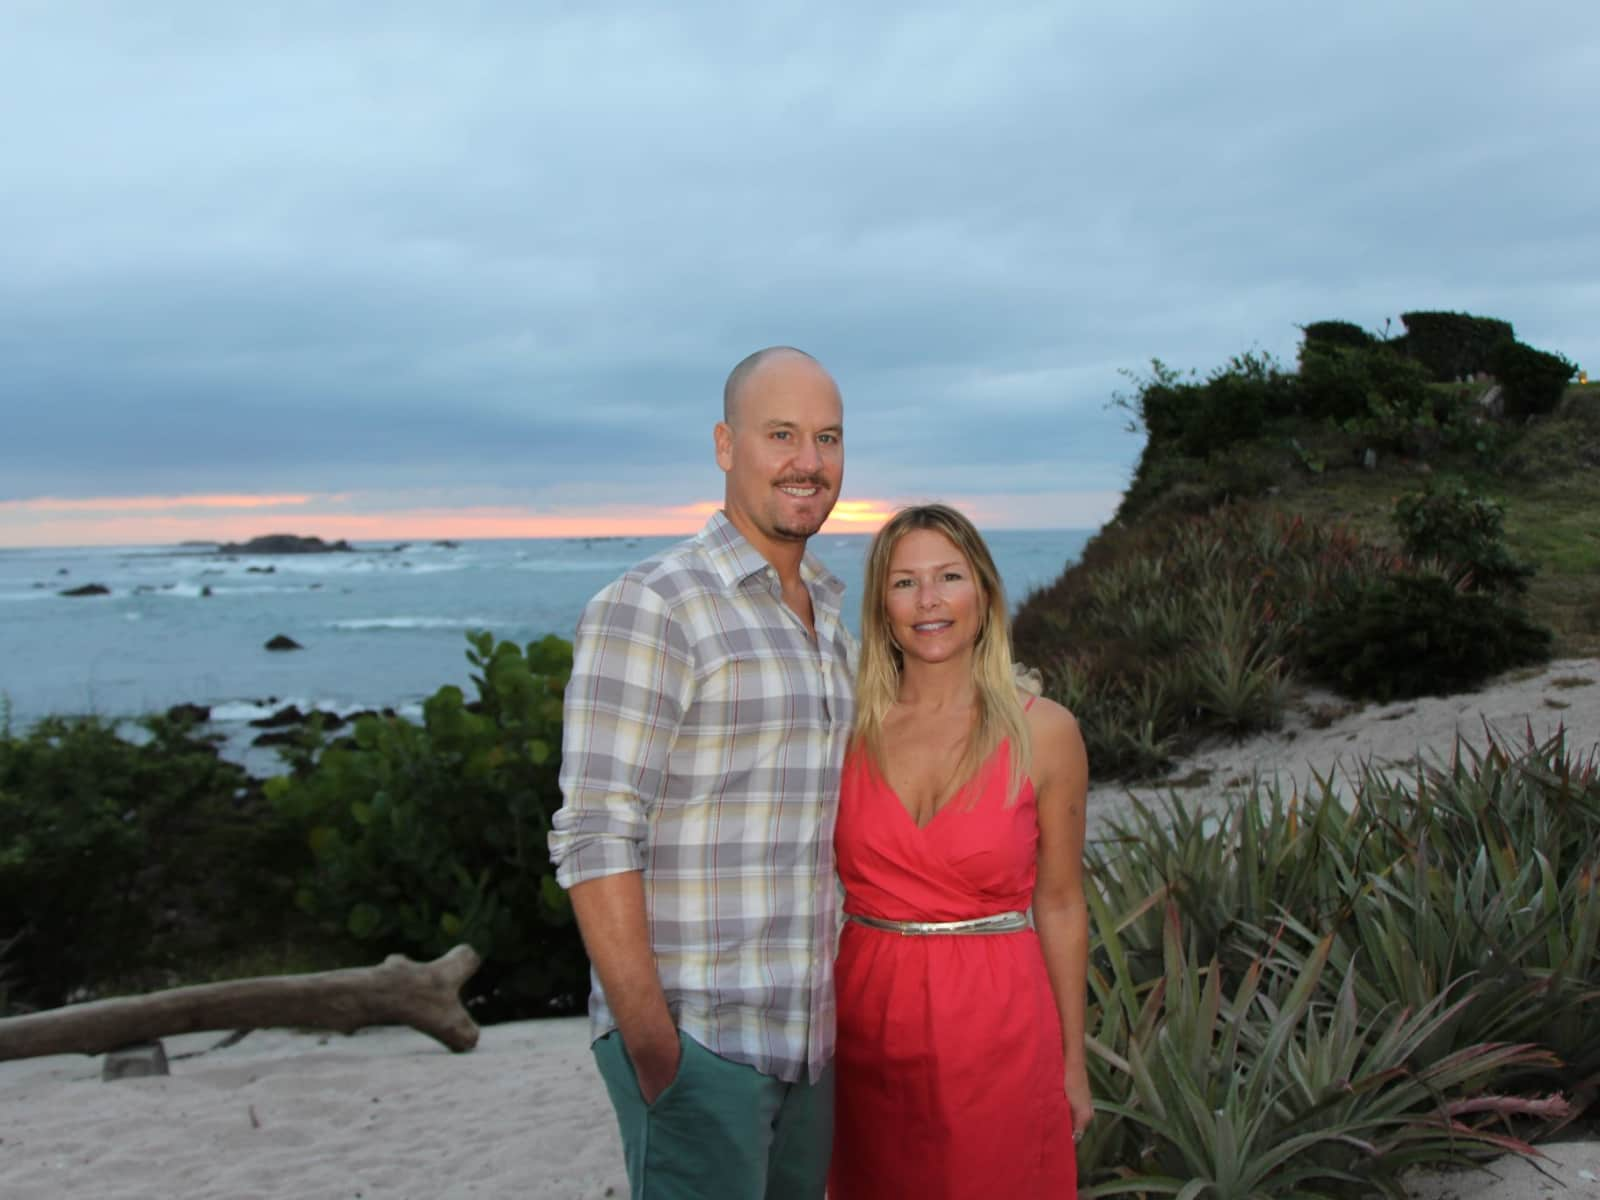 Chad & Kirsten from Carlsbad, California, United States